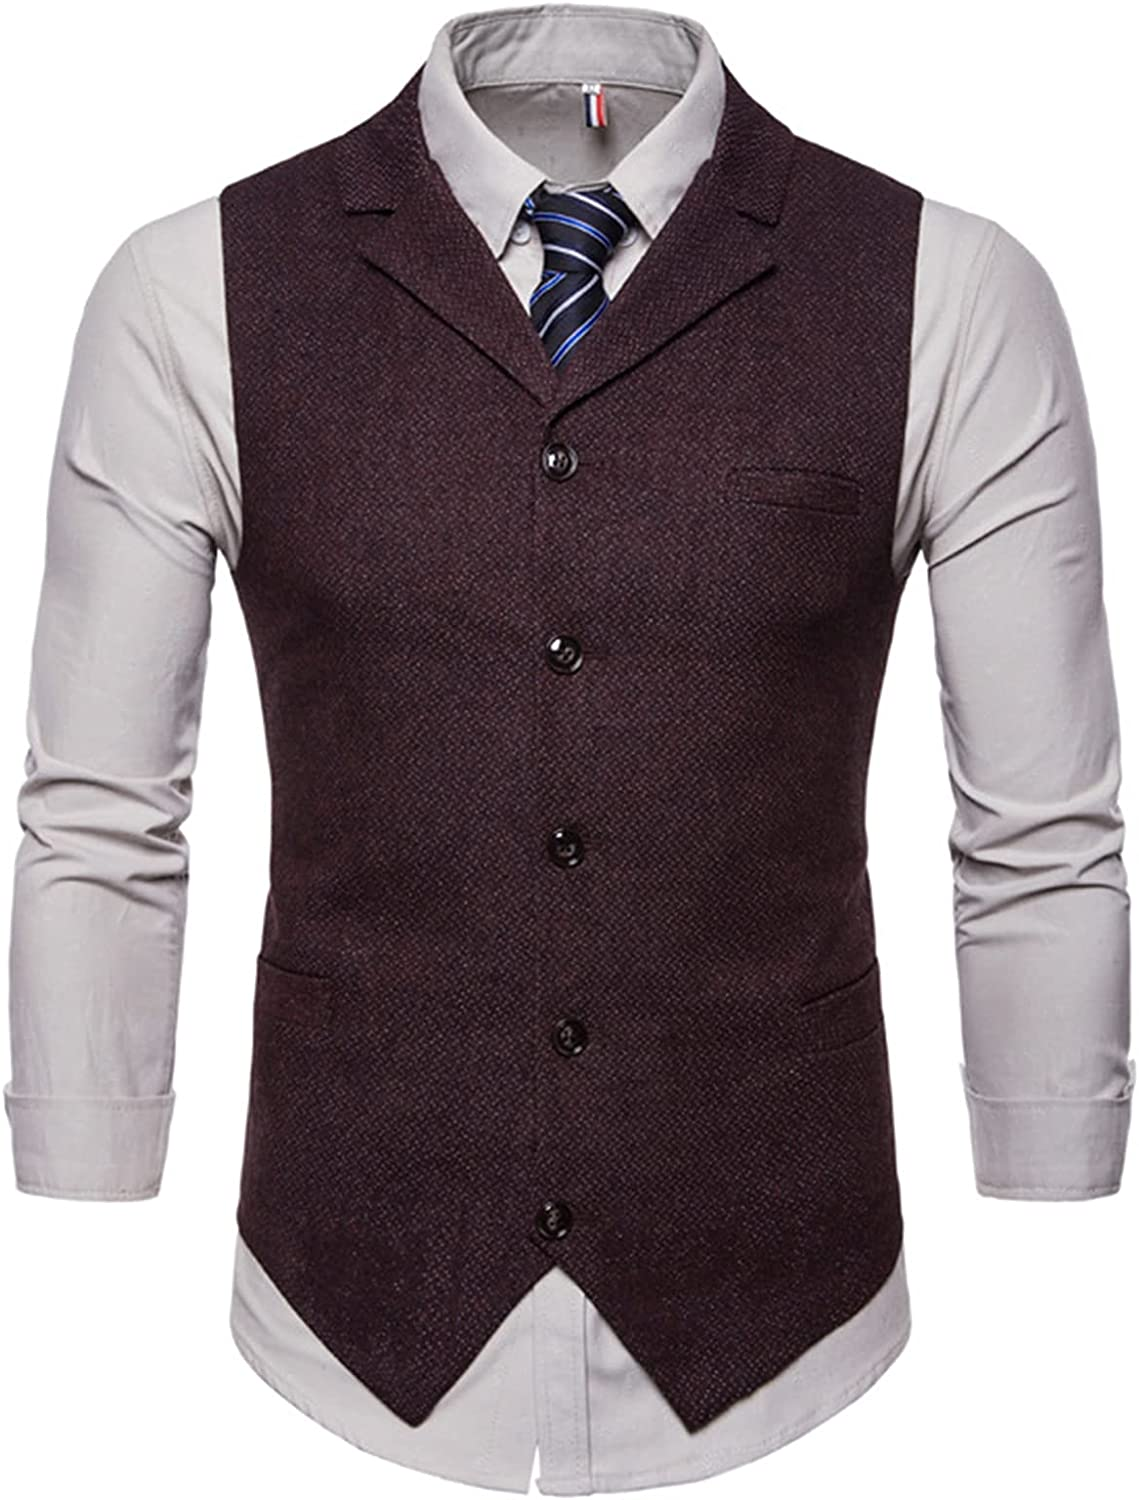 EverNight Mens Casual Waistcoats,Slim Fit Waistcoat Formal Suit Vest,Formal Wedding Party 5 Buttons Waistcoat